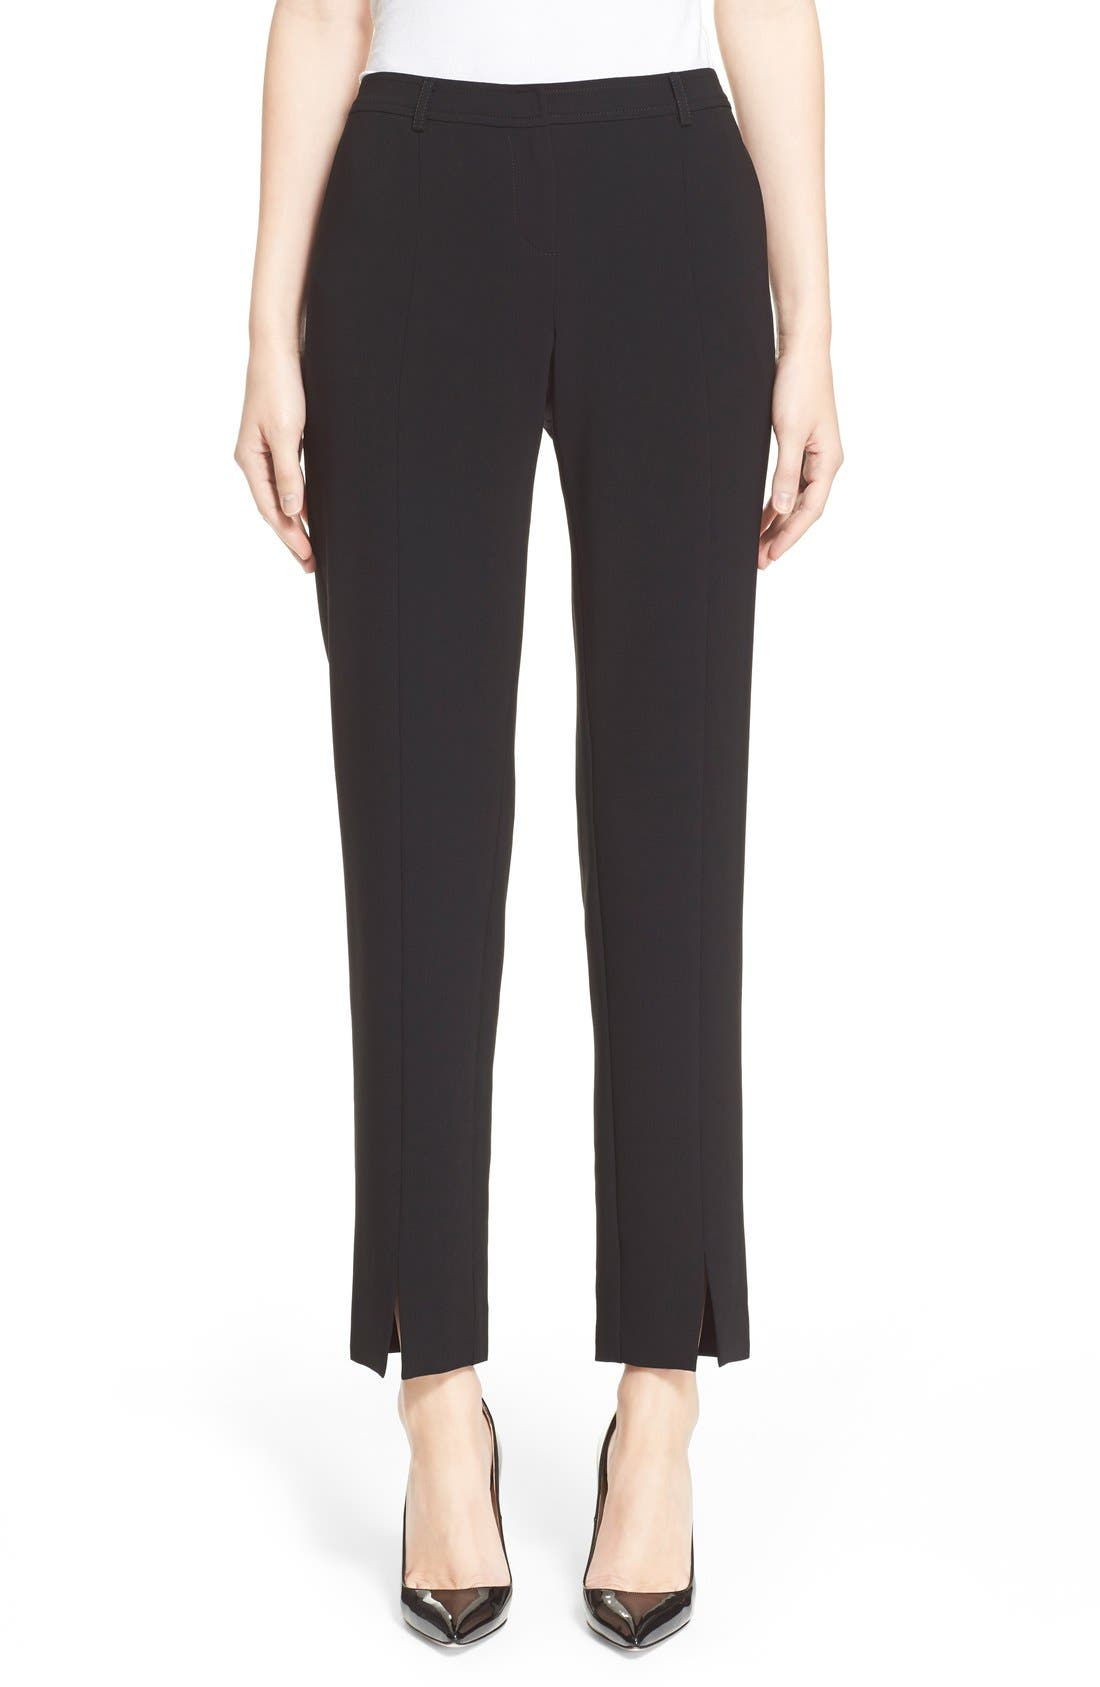 Main Image - St. John Collection 'Jennifer' Crepe Marocain Ankle Pants